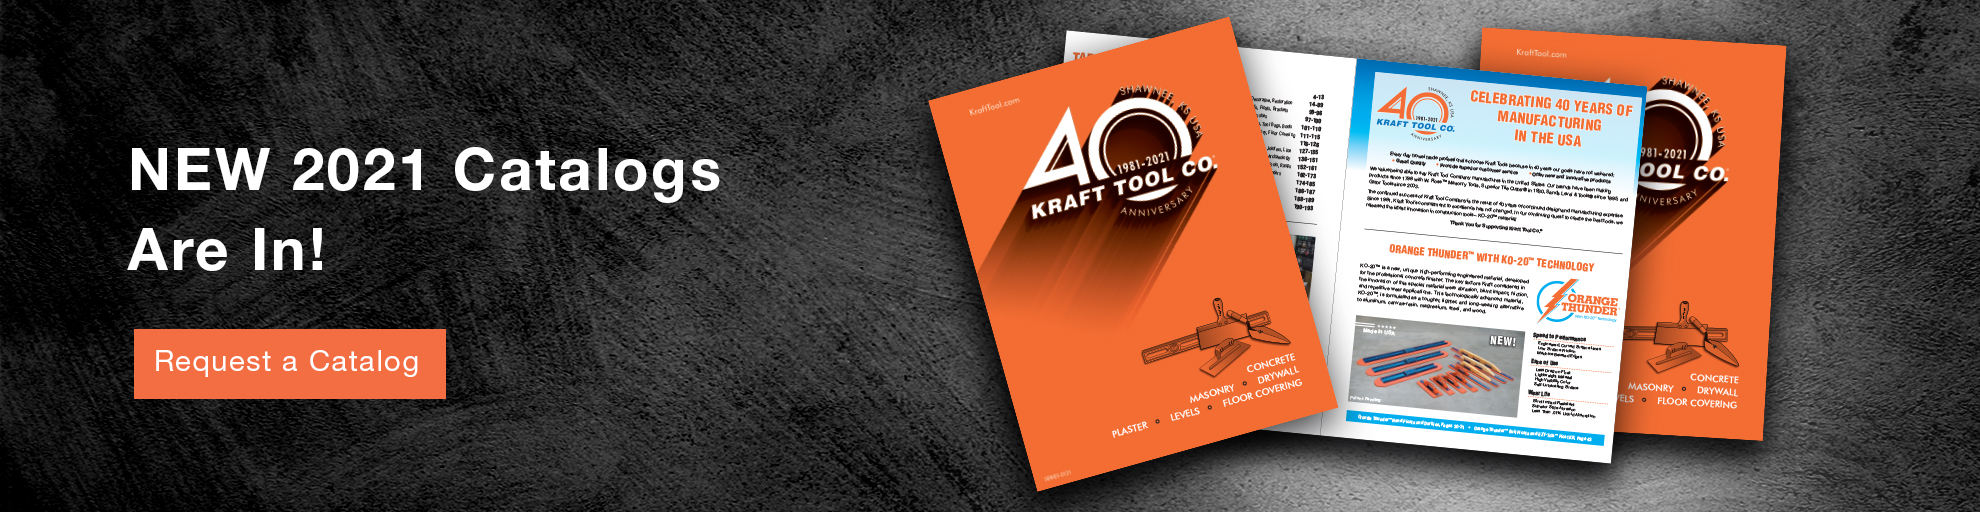 2021 Kraft Tool Catalog graphic celebrating 40 years